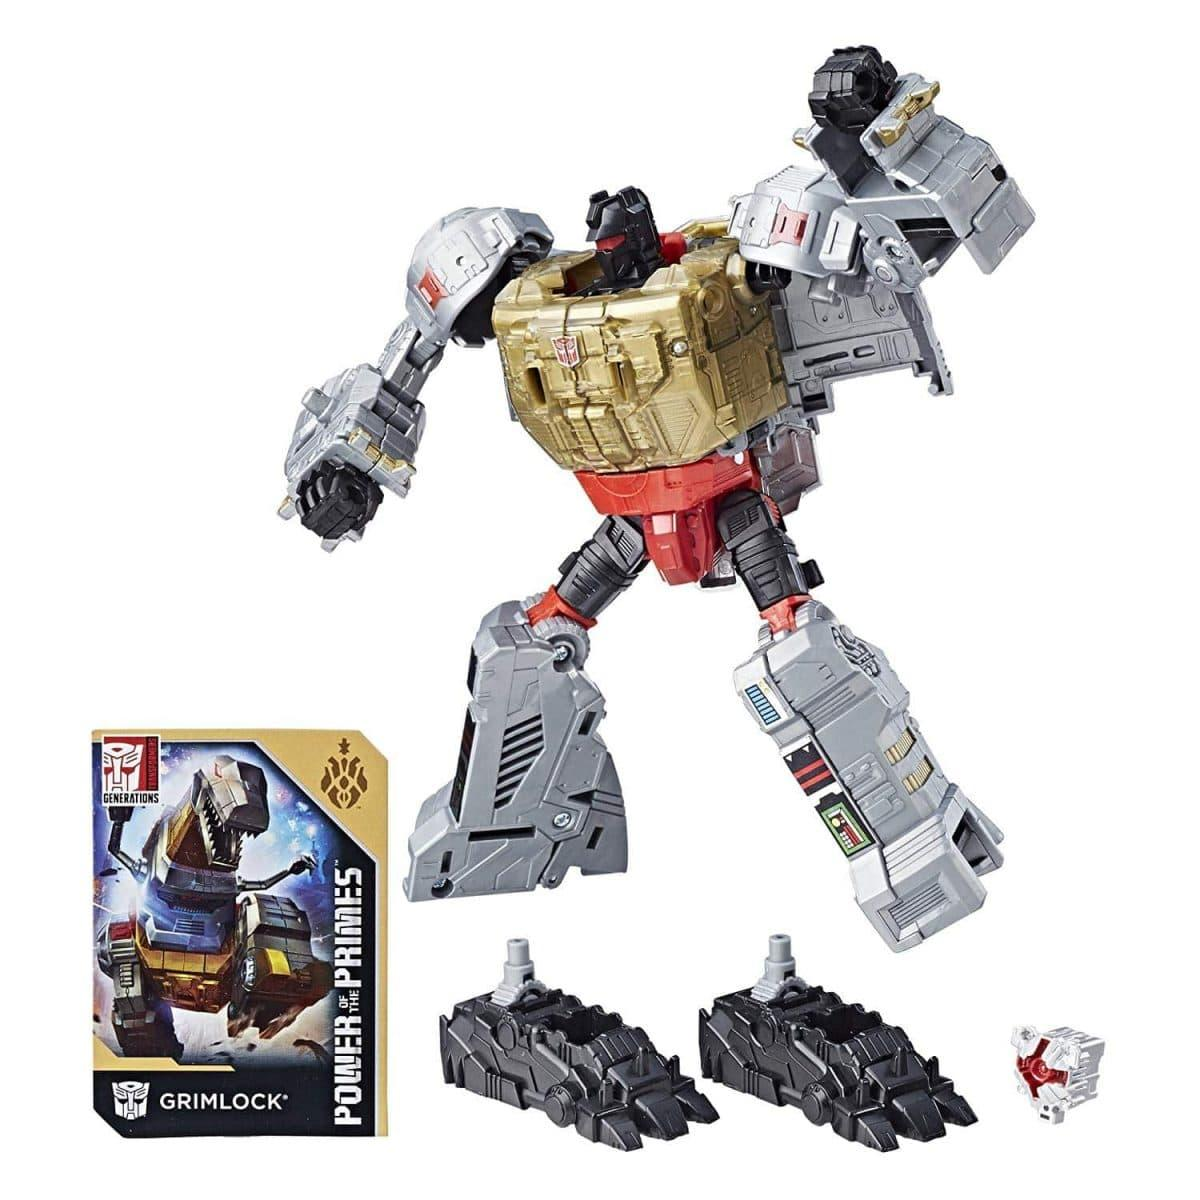 The Primes Voyager Class Grimlock